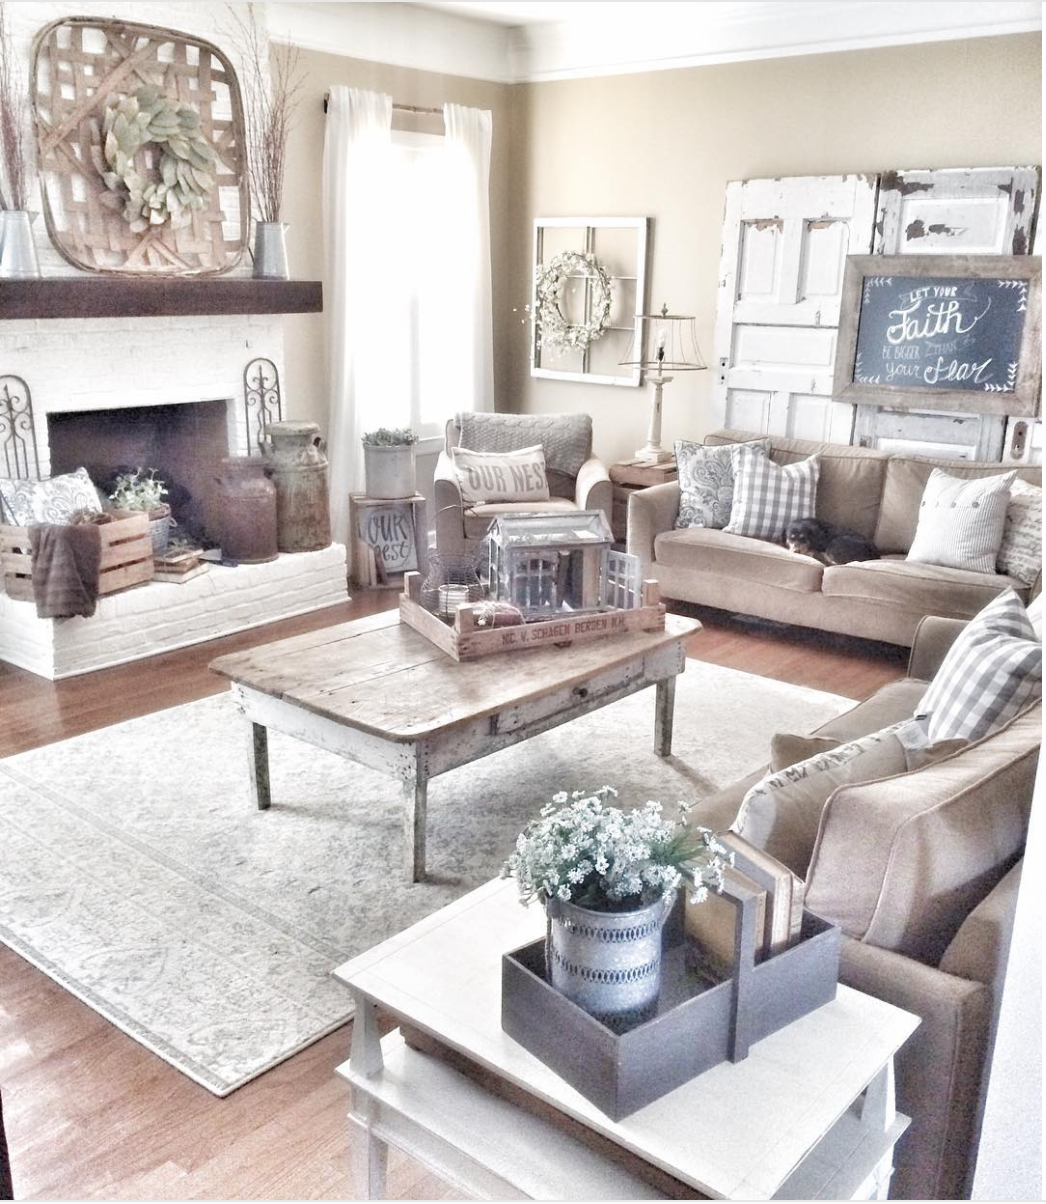 20 Gorgeous Rustic Living Room Ideas That Will Melt Your Heart With Warmth Cute Diy Projects Rustic Farmhouse Living Room Farmhouse Style Living Room Farm House Living Room